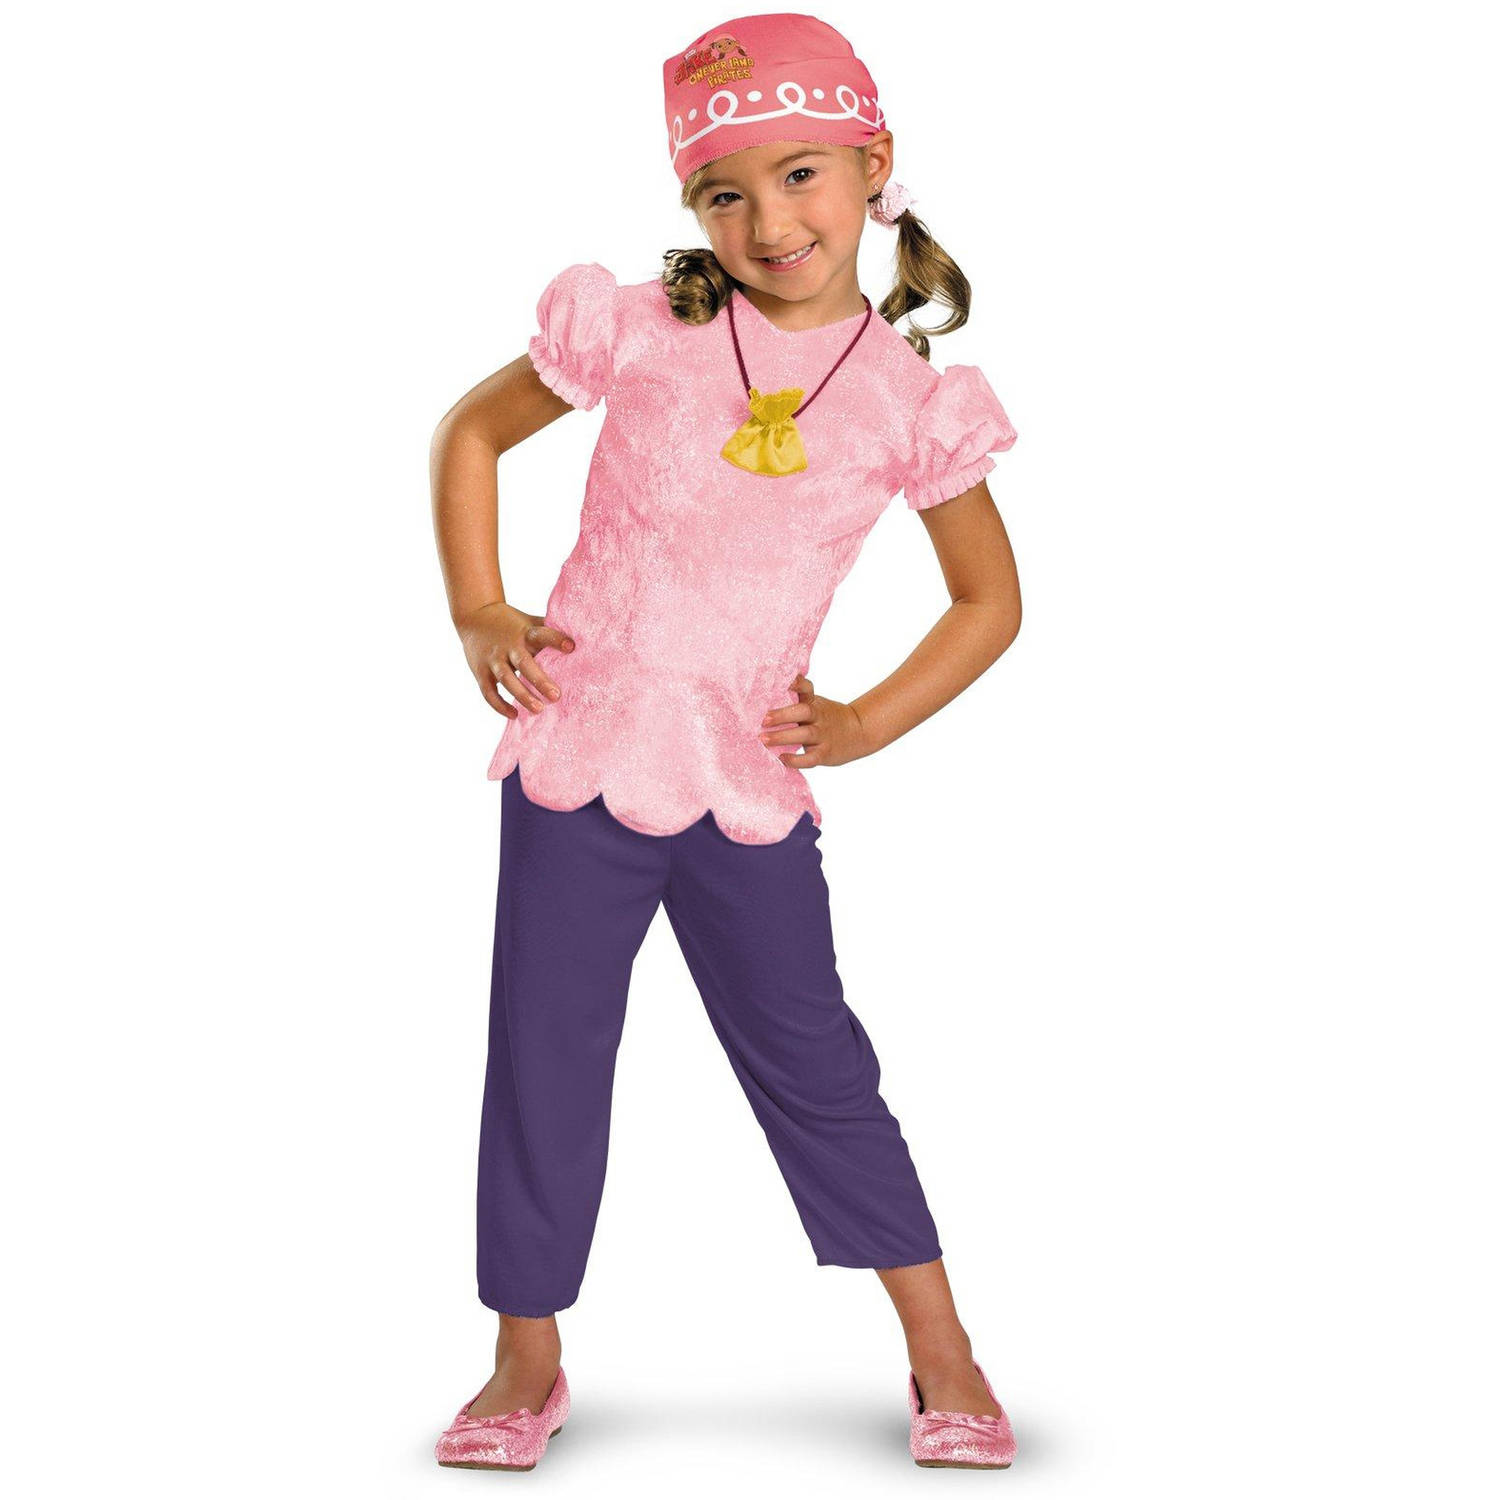 Disney Jake and the Never Land Pirates Izzy Classic Child Halloween Costume, Small (4-6)